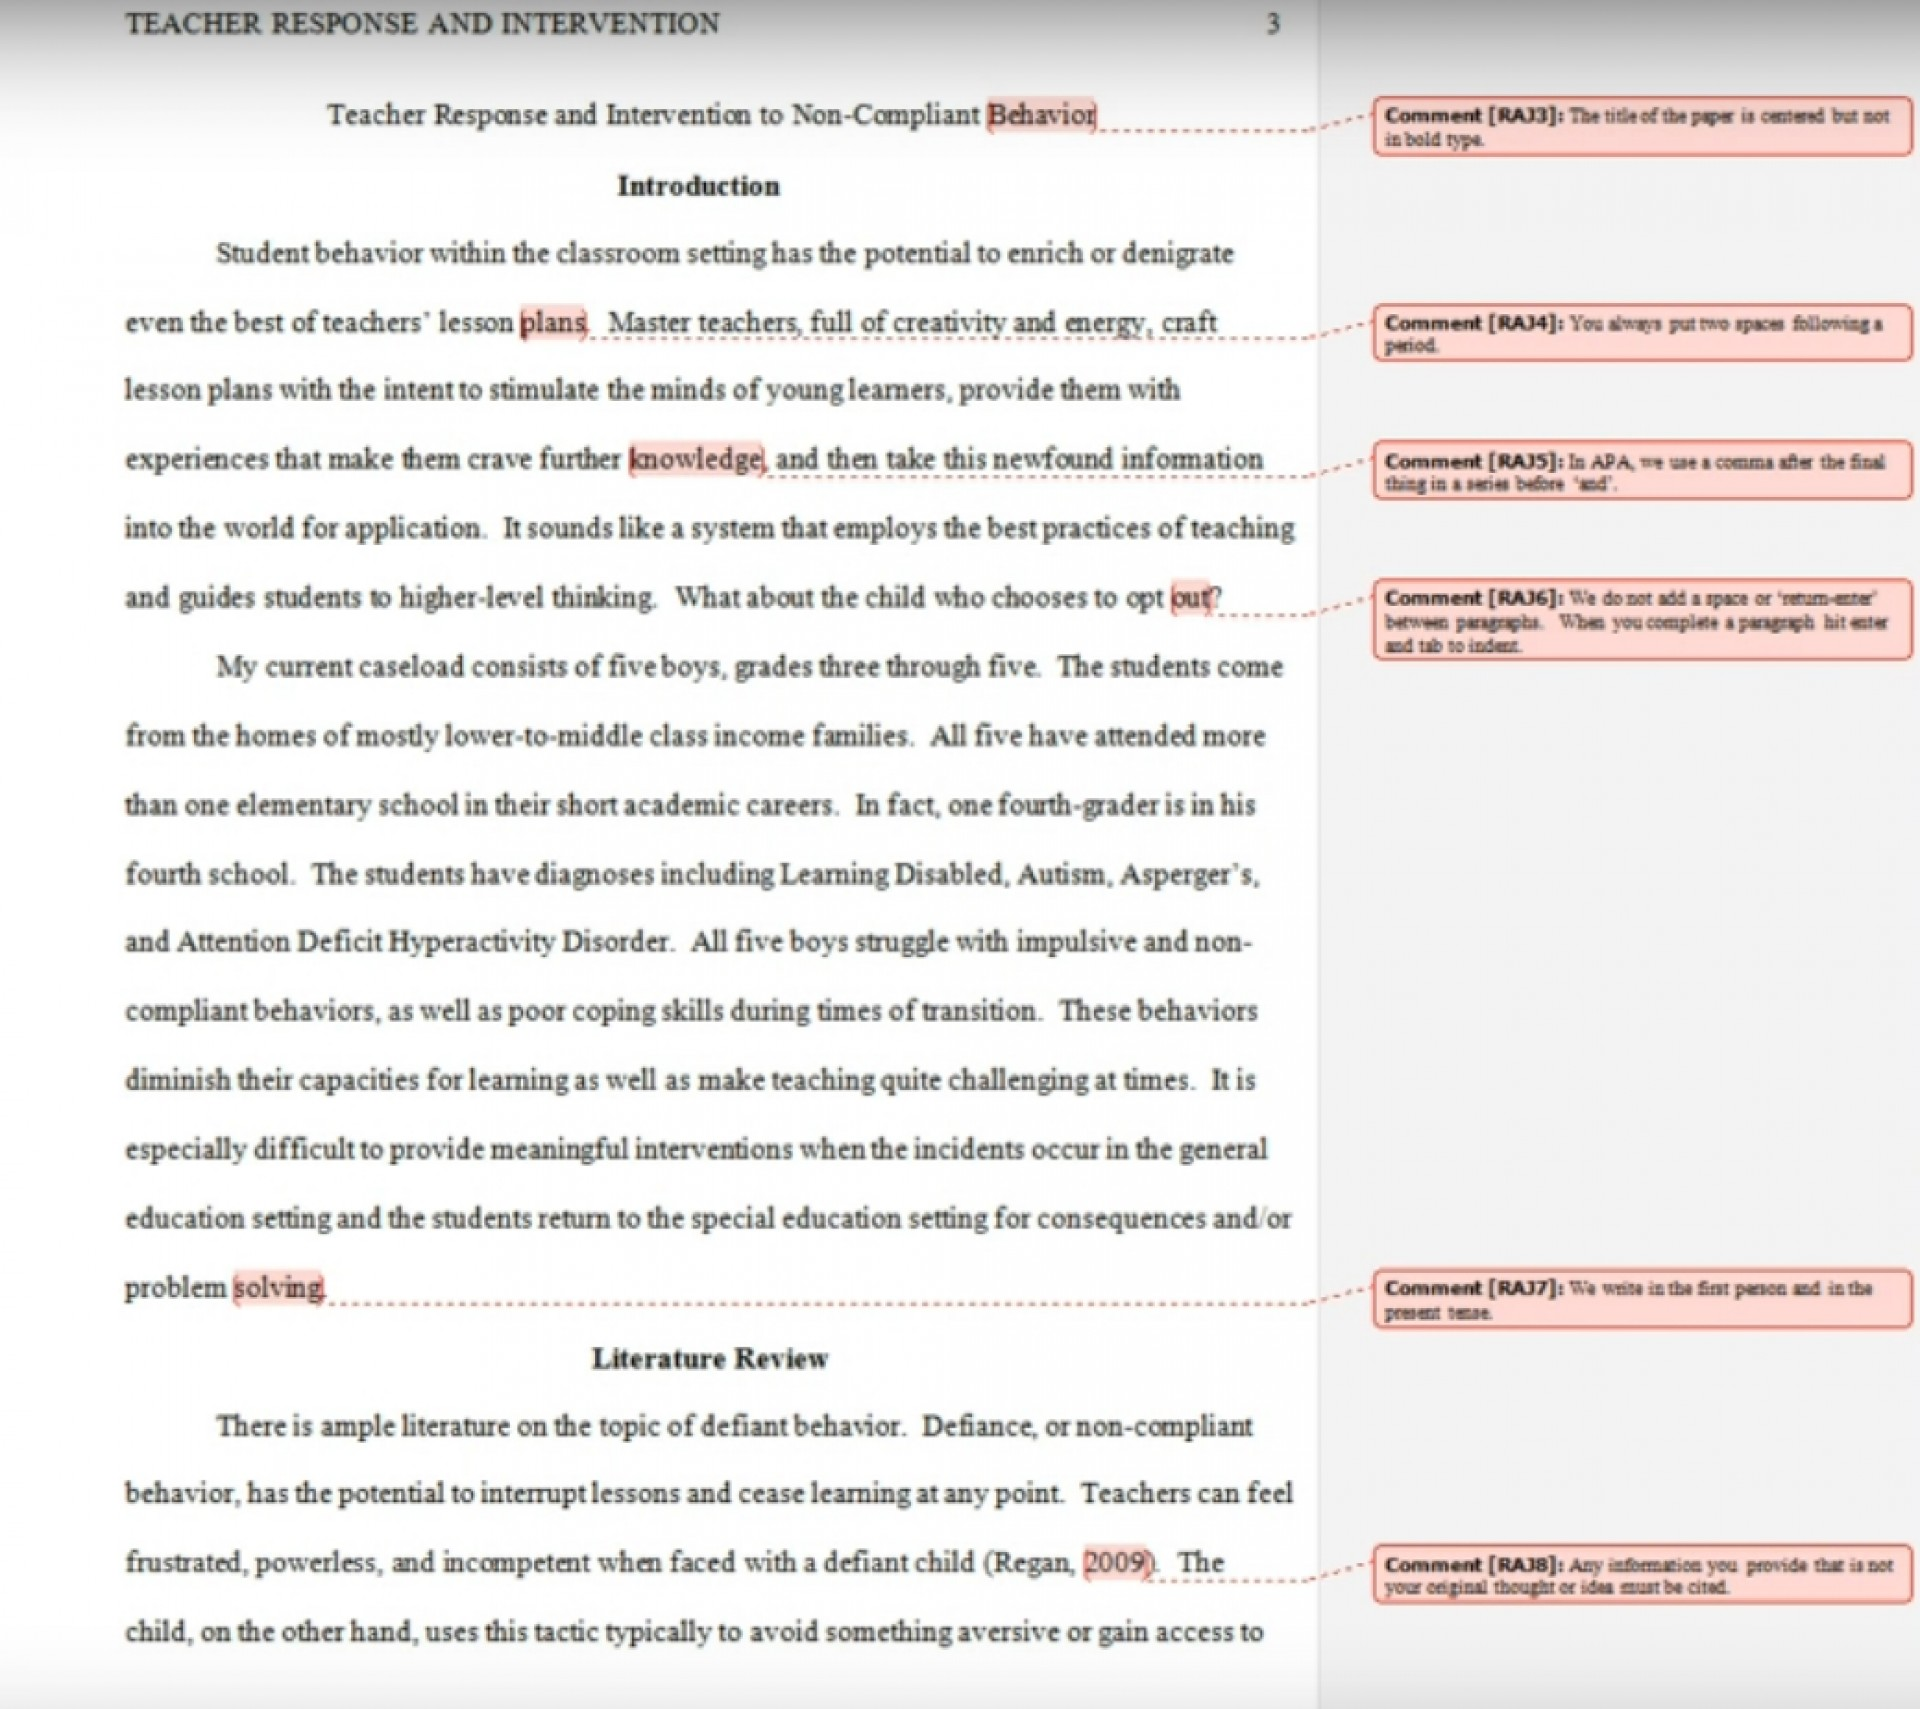 003 How To Begin Research Paper Introduction Fantastic A Write Paragraph Start Examples Example 1920